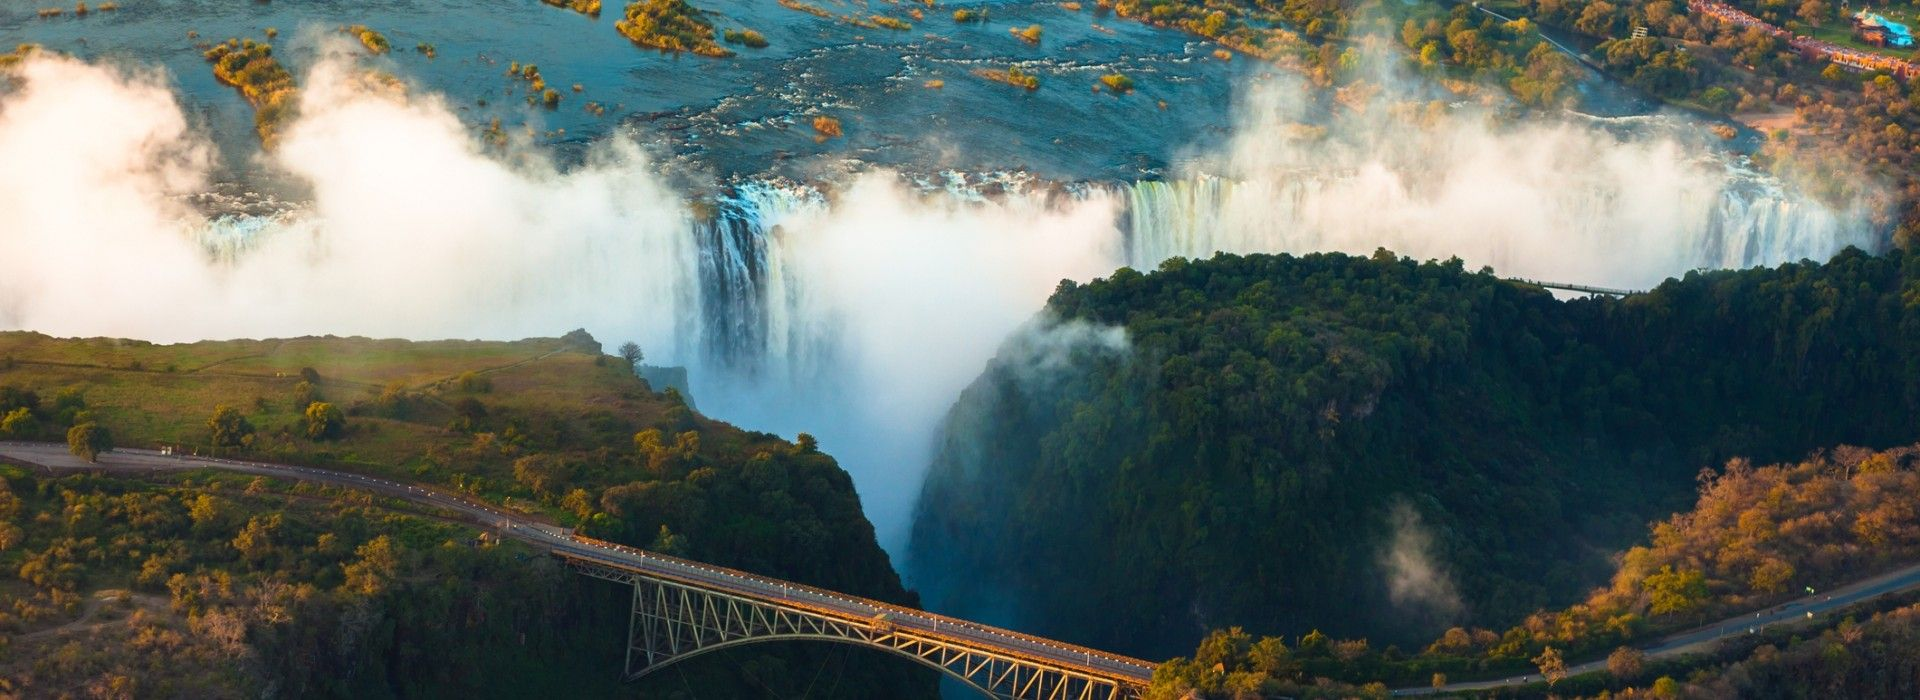 Boat tours, water sports and marine wildlife in Zambia